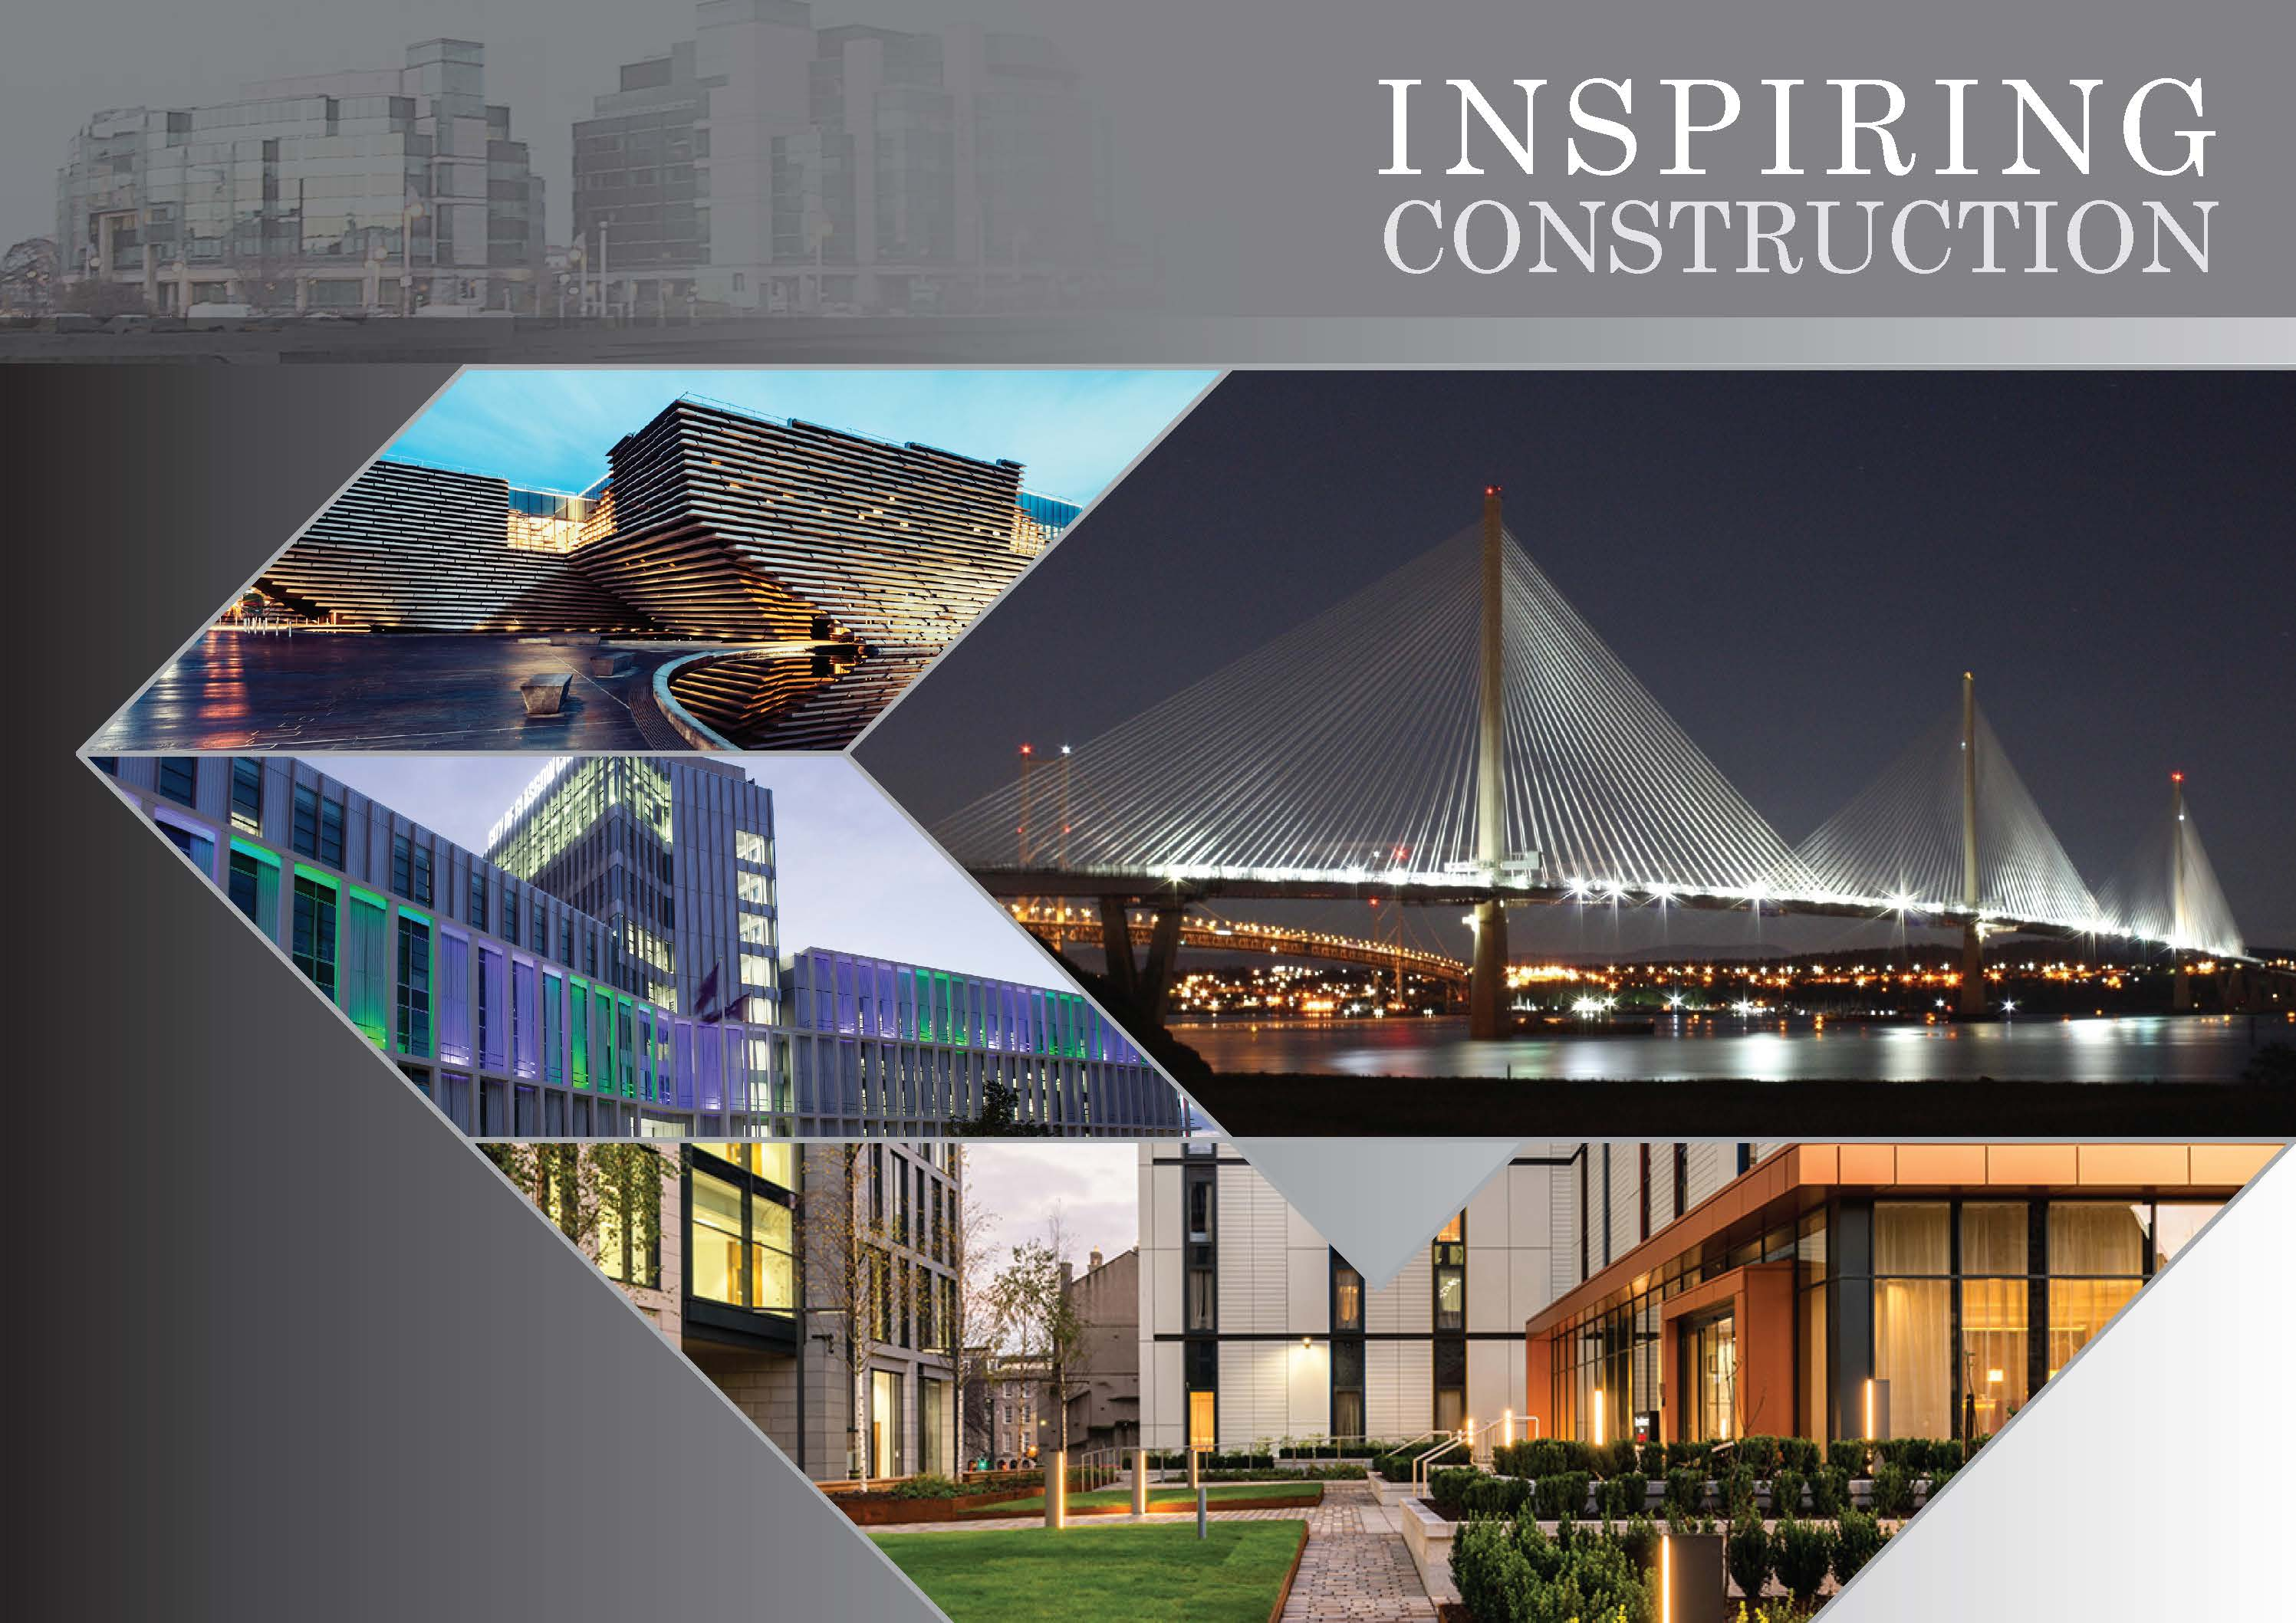 Inspiring Construction Publication